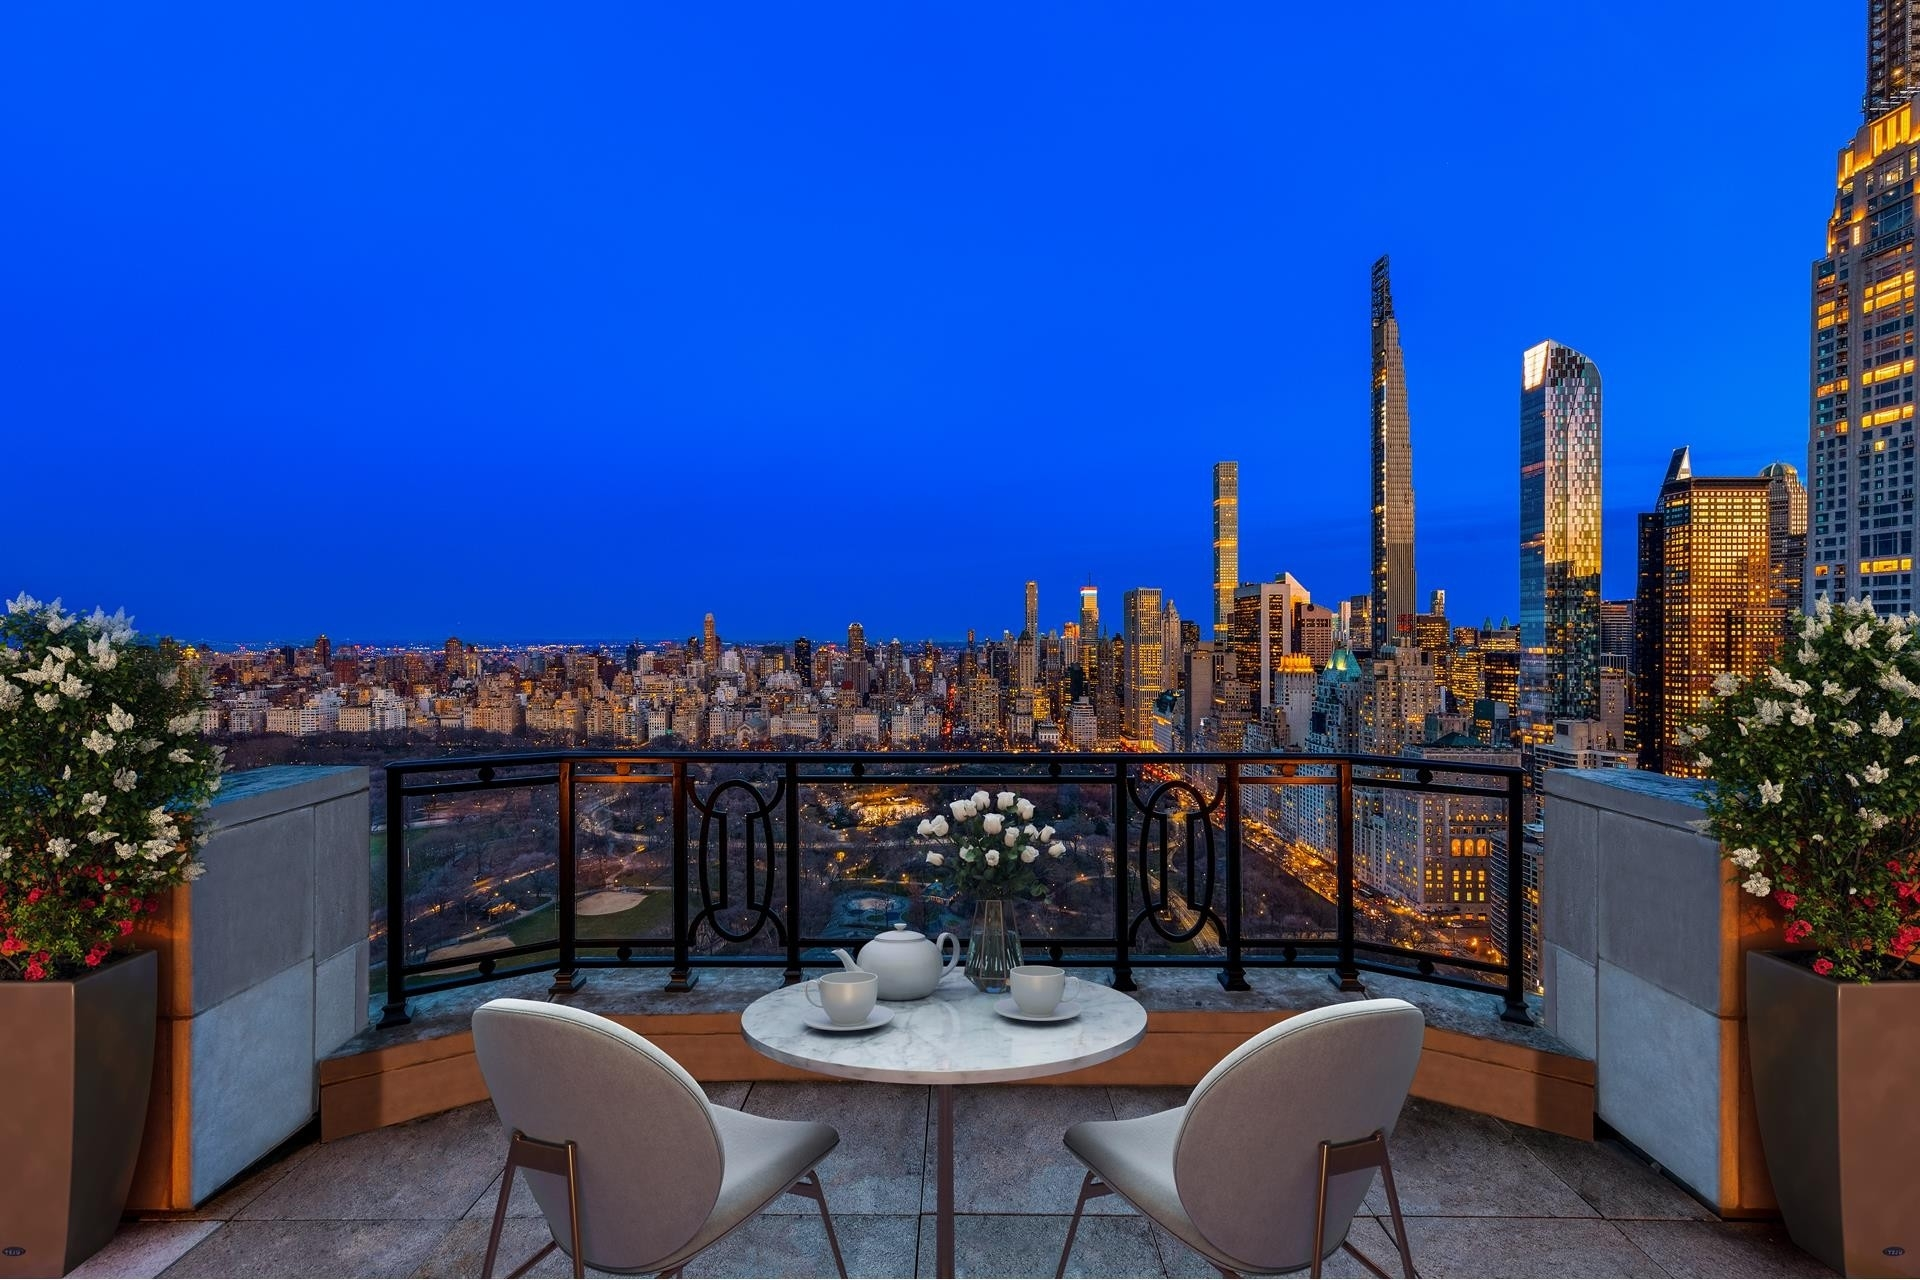 Property à 15 Cpw, 15 CENTRAL PARK W, PH41 Lincoln Square, New York, NY 10023